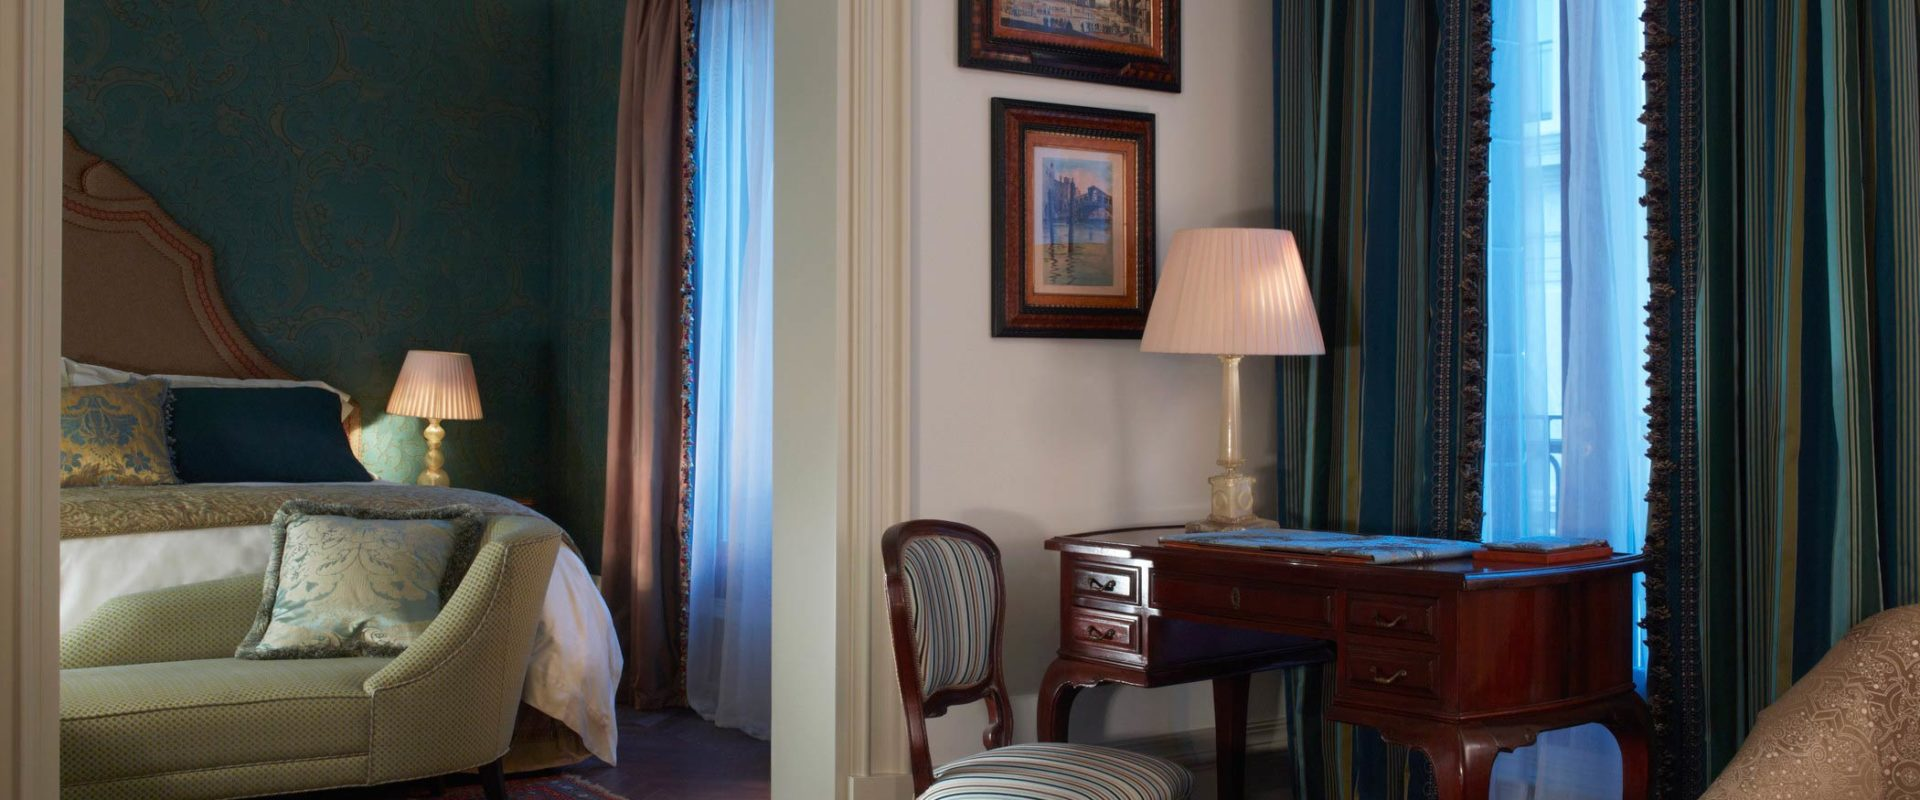 The-Griitti-Palace-Venice-Sestriere-Suite